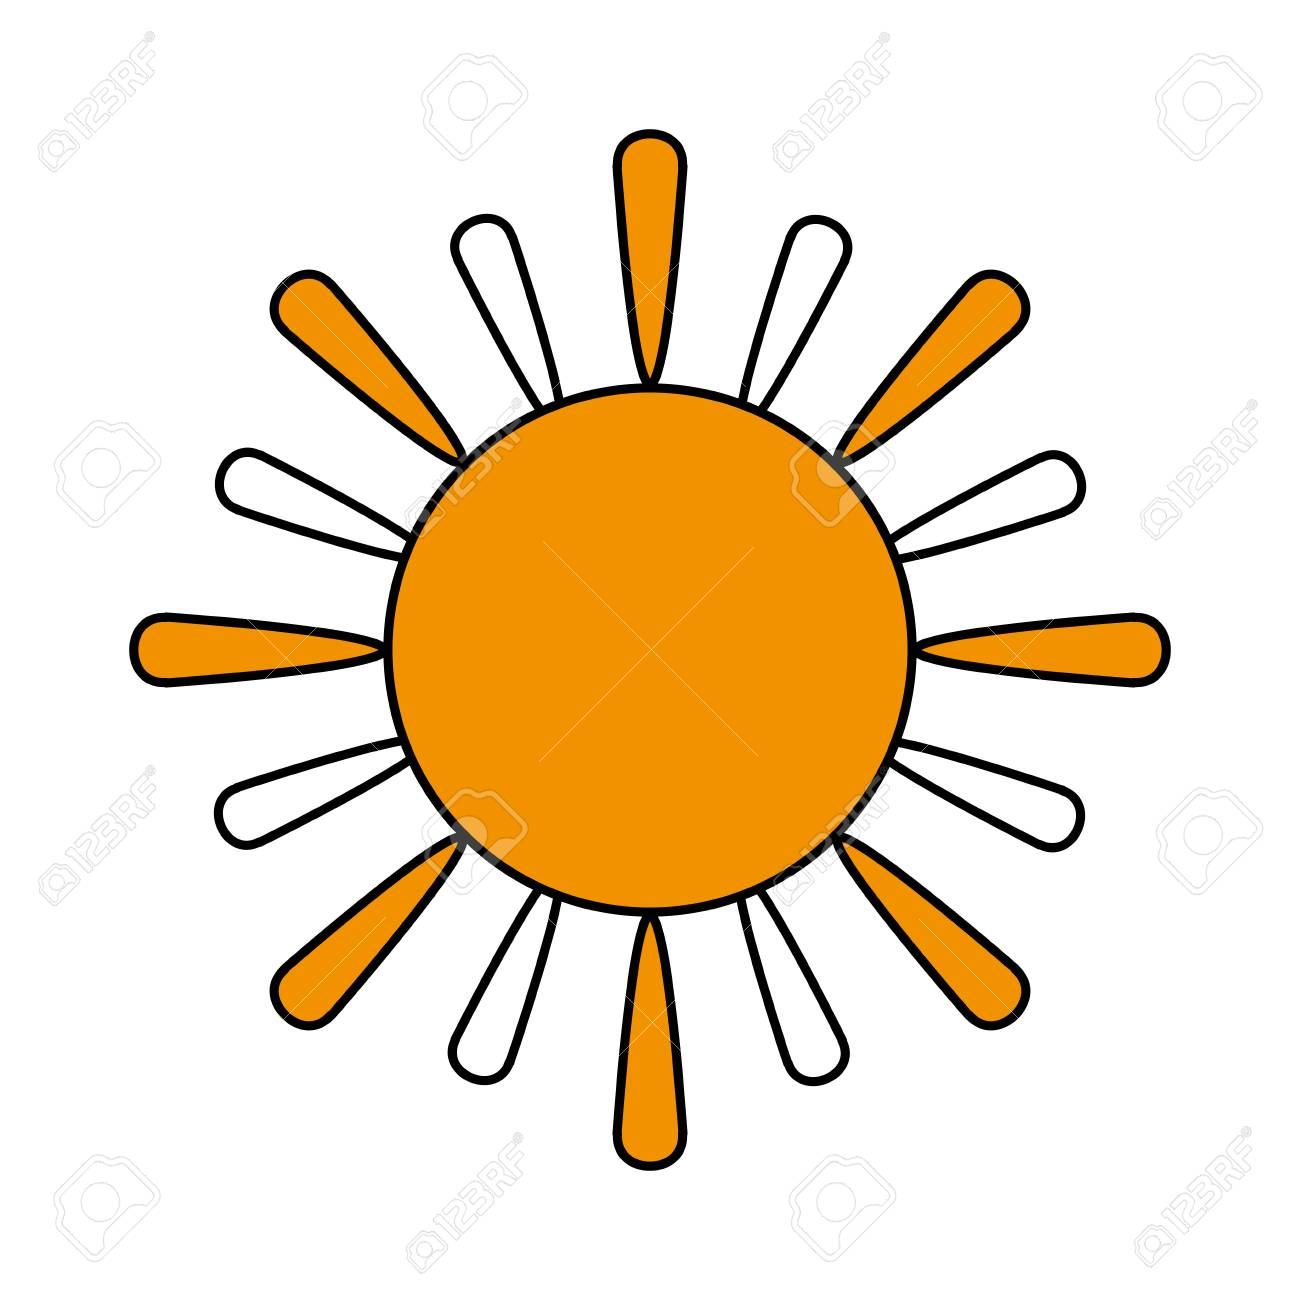 sun cartoon icon image vector illustration design one color royalty rh 123rf com Free Vector Textures Sunshine Vector Free